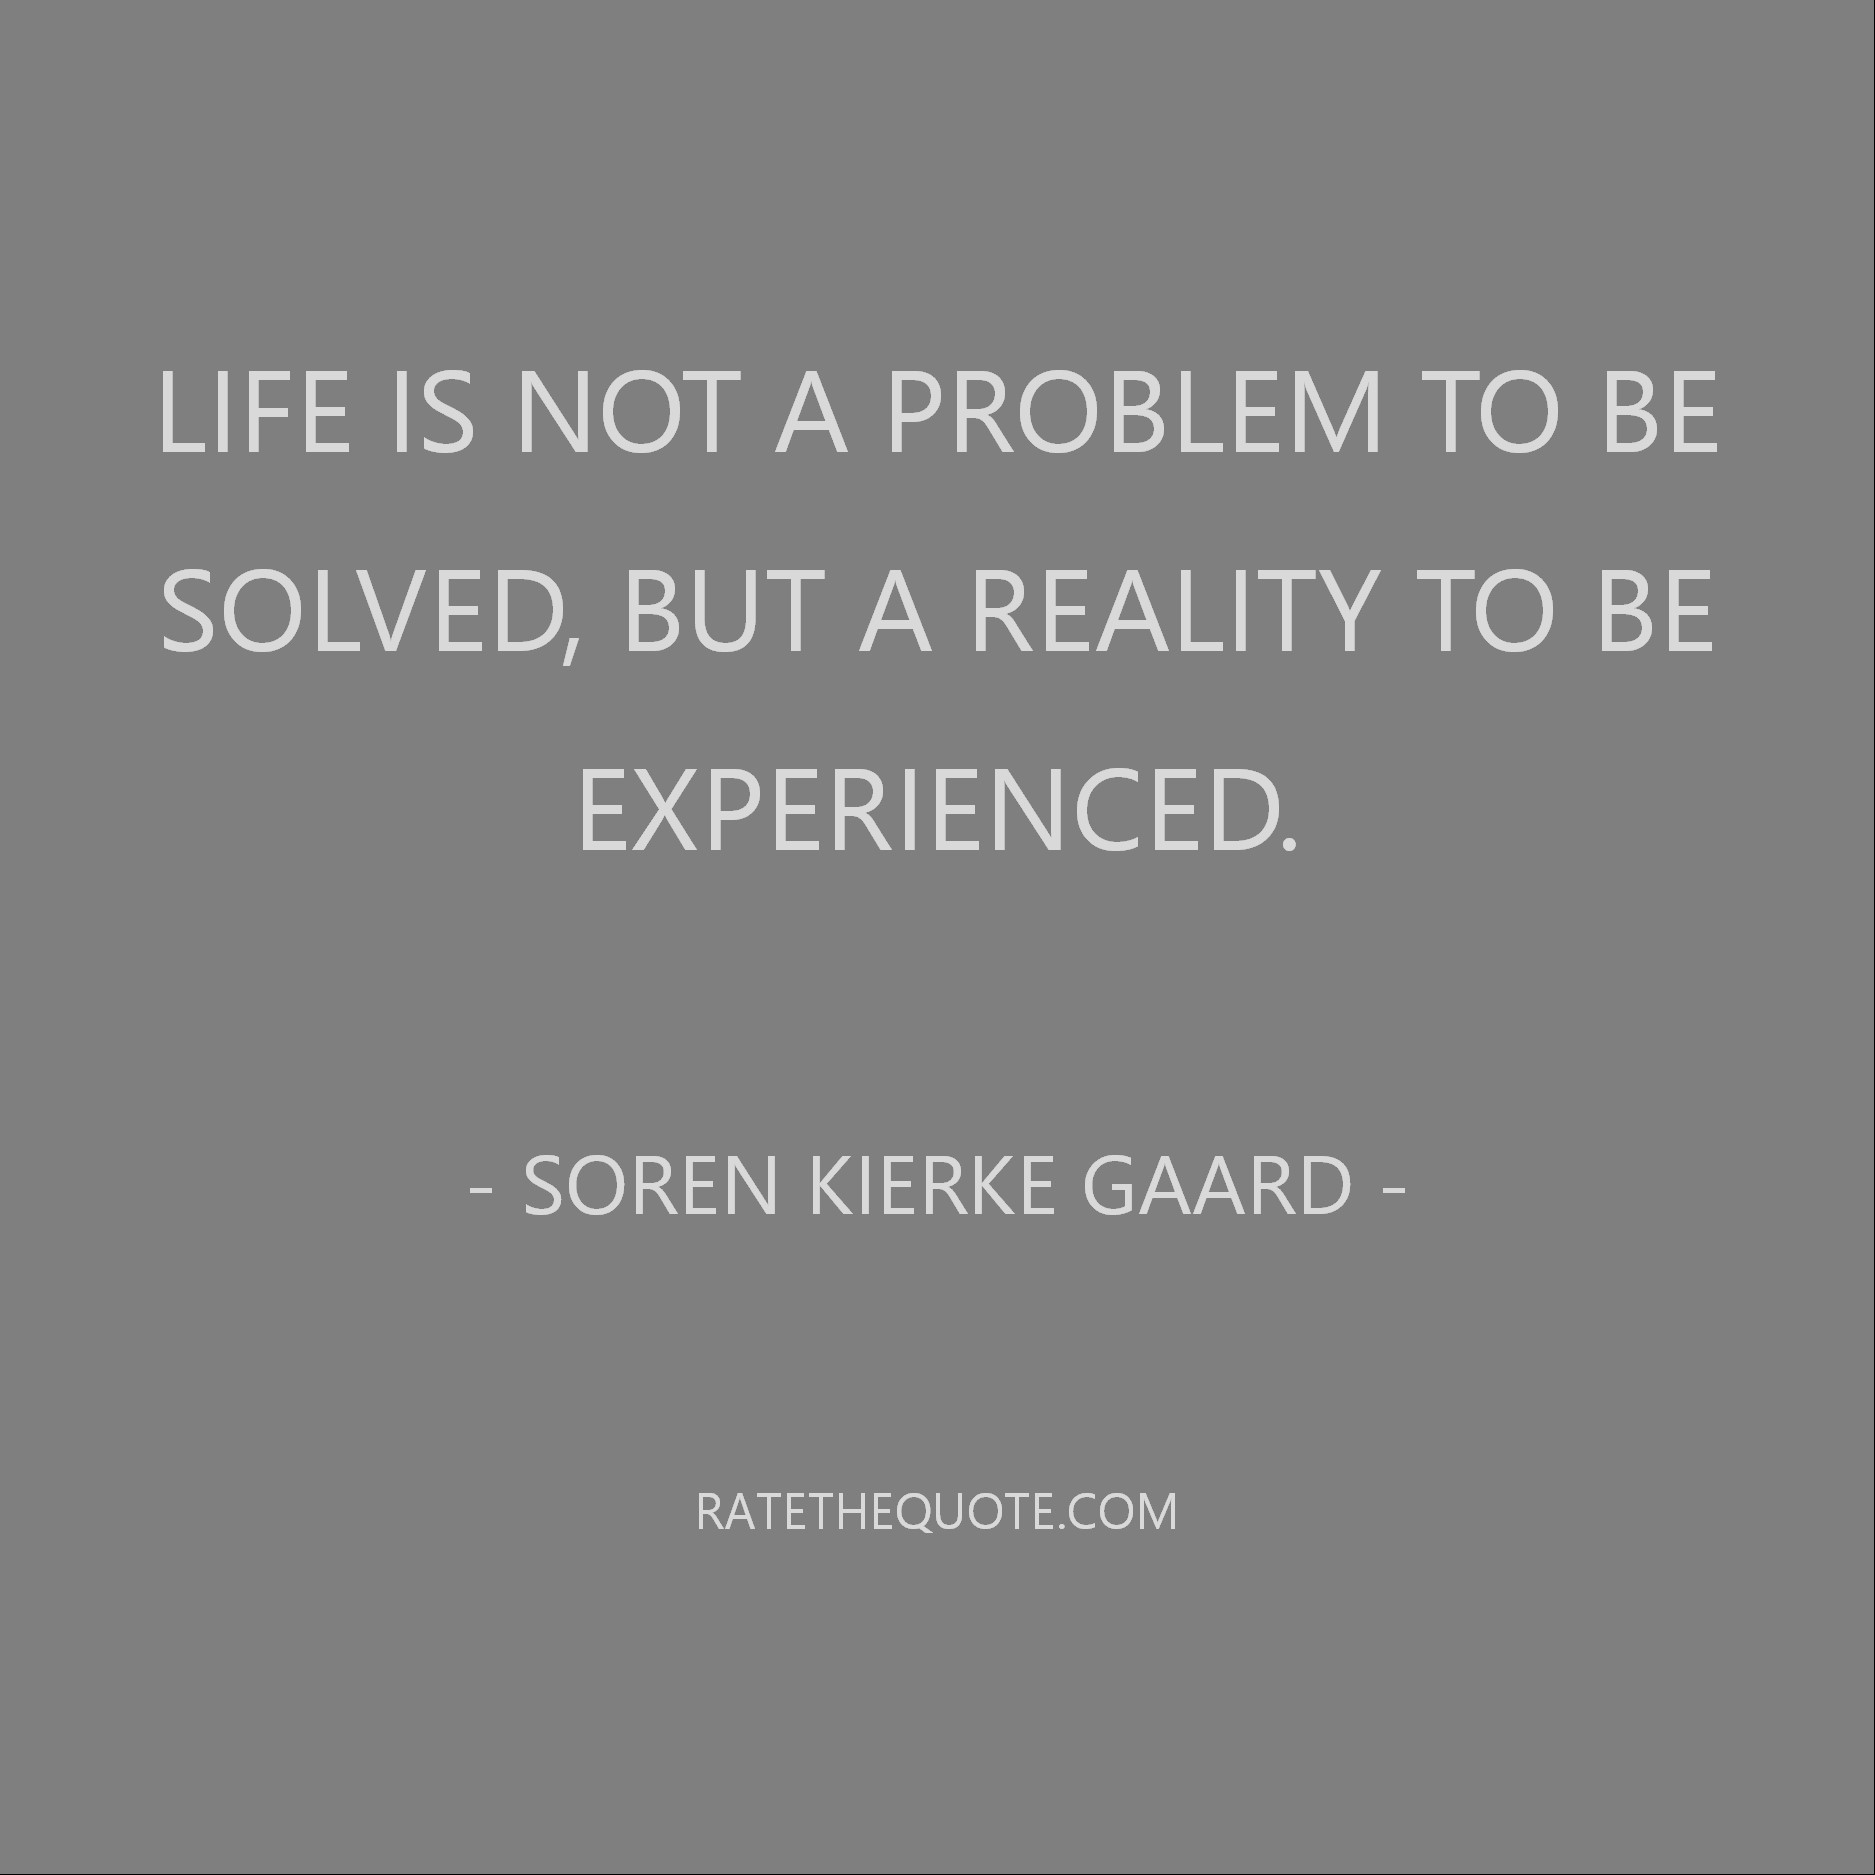 Life is not a problem to be solved, but a reality to be experienced. Soren Kierkegaard